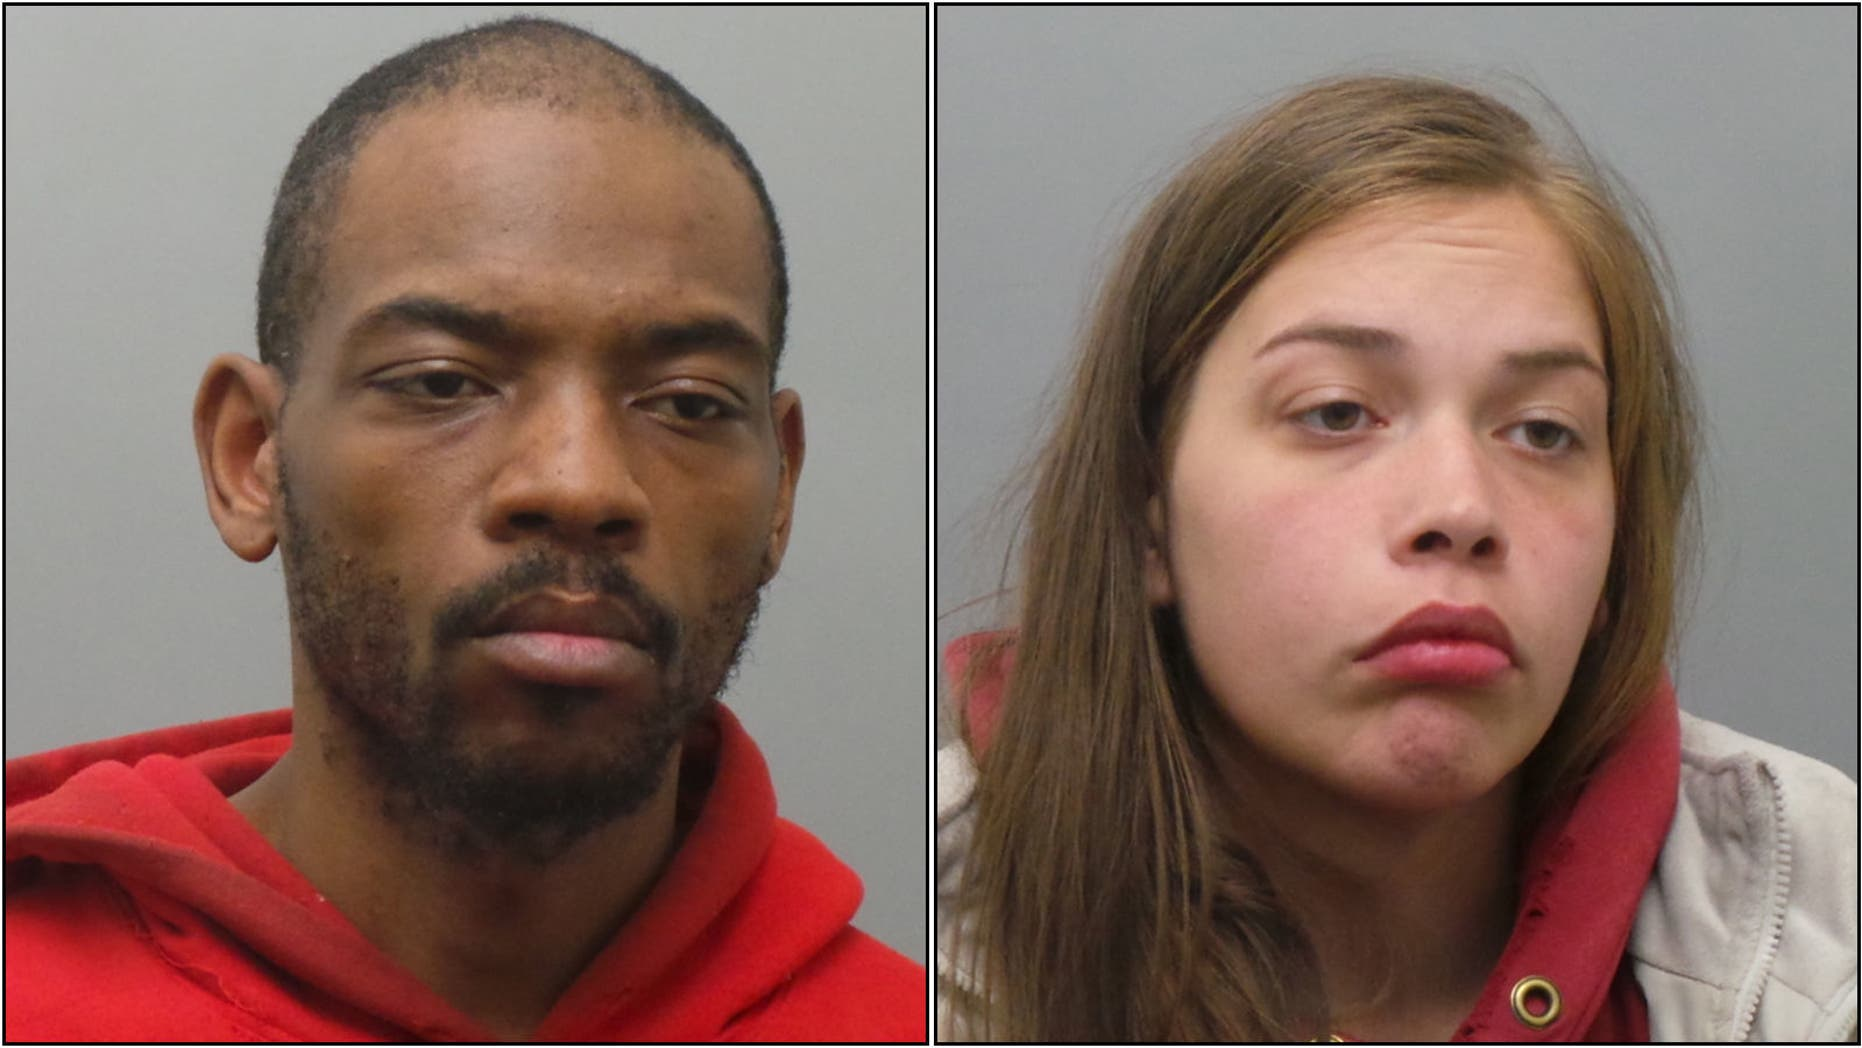 Suspects identified as Sherman Kinchen, 27, and Kimberly Cartwright, 24, both of St. Louis, face multiple charges, authorities say.